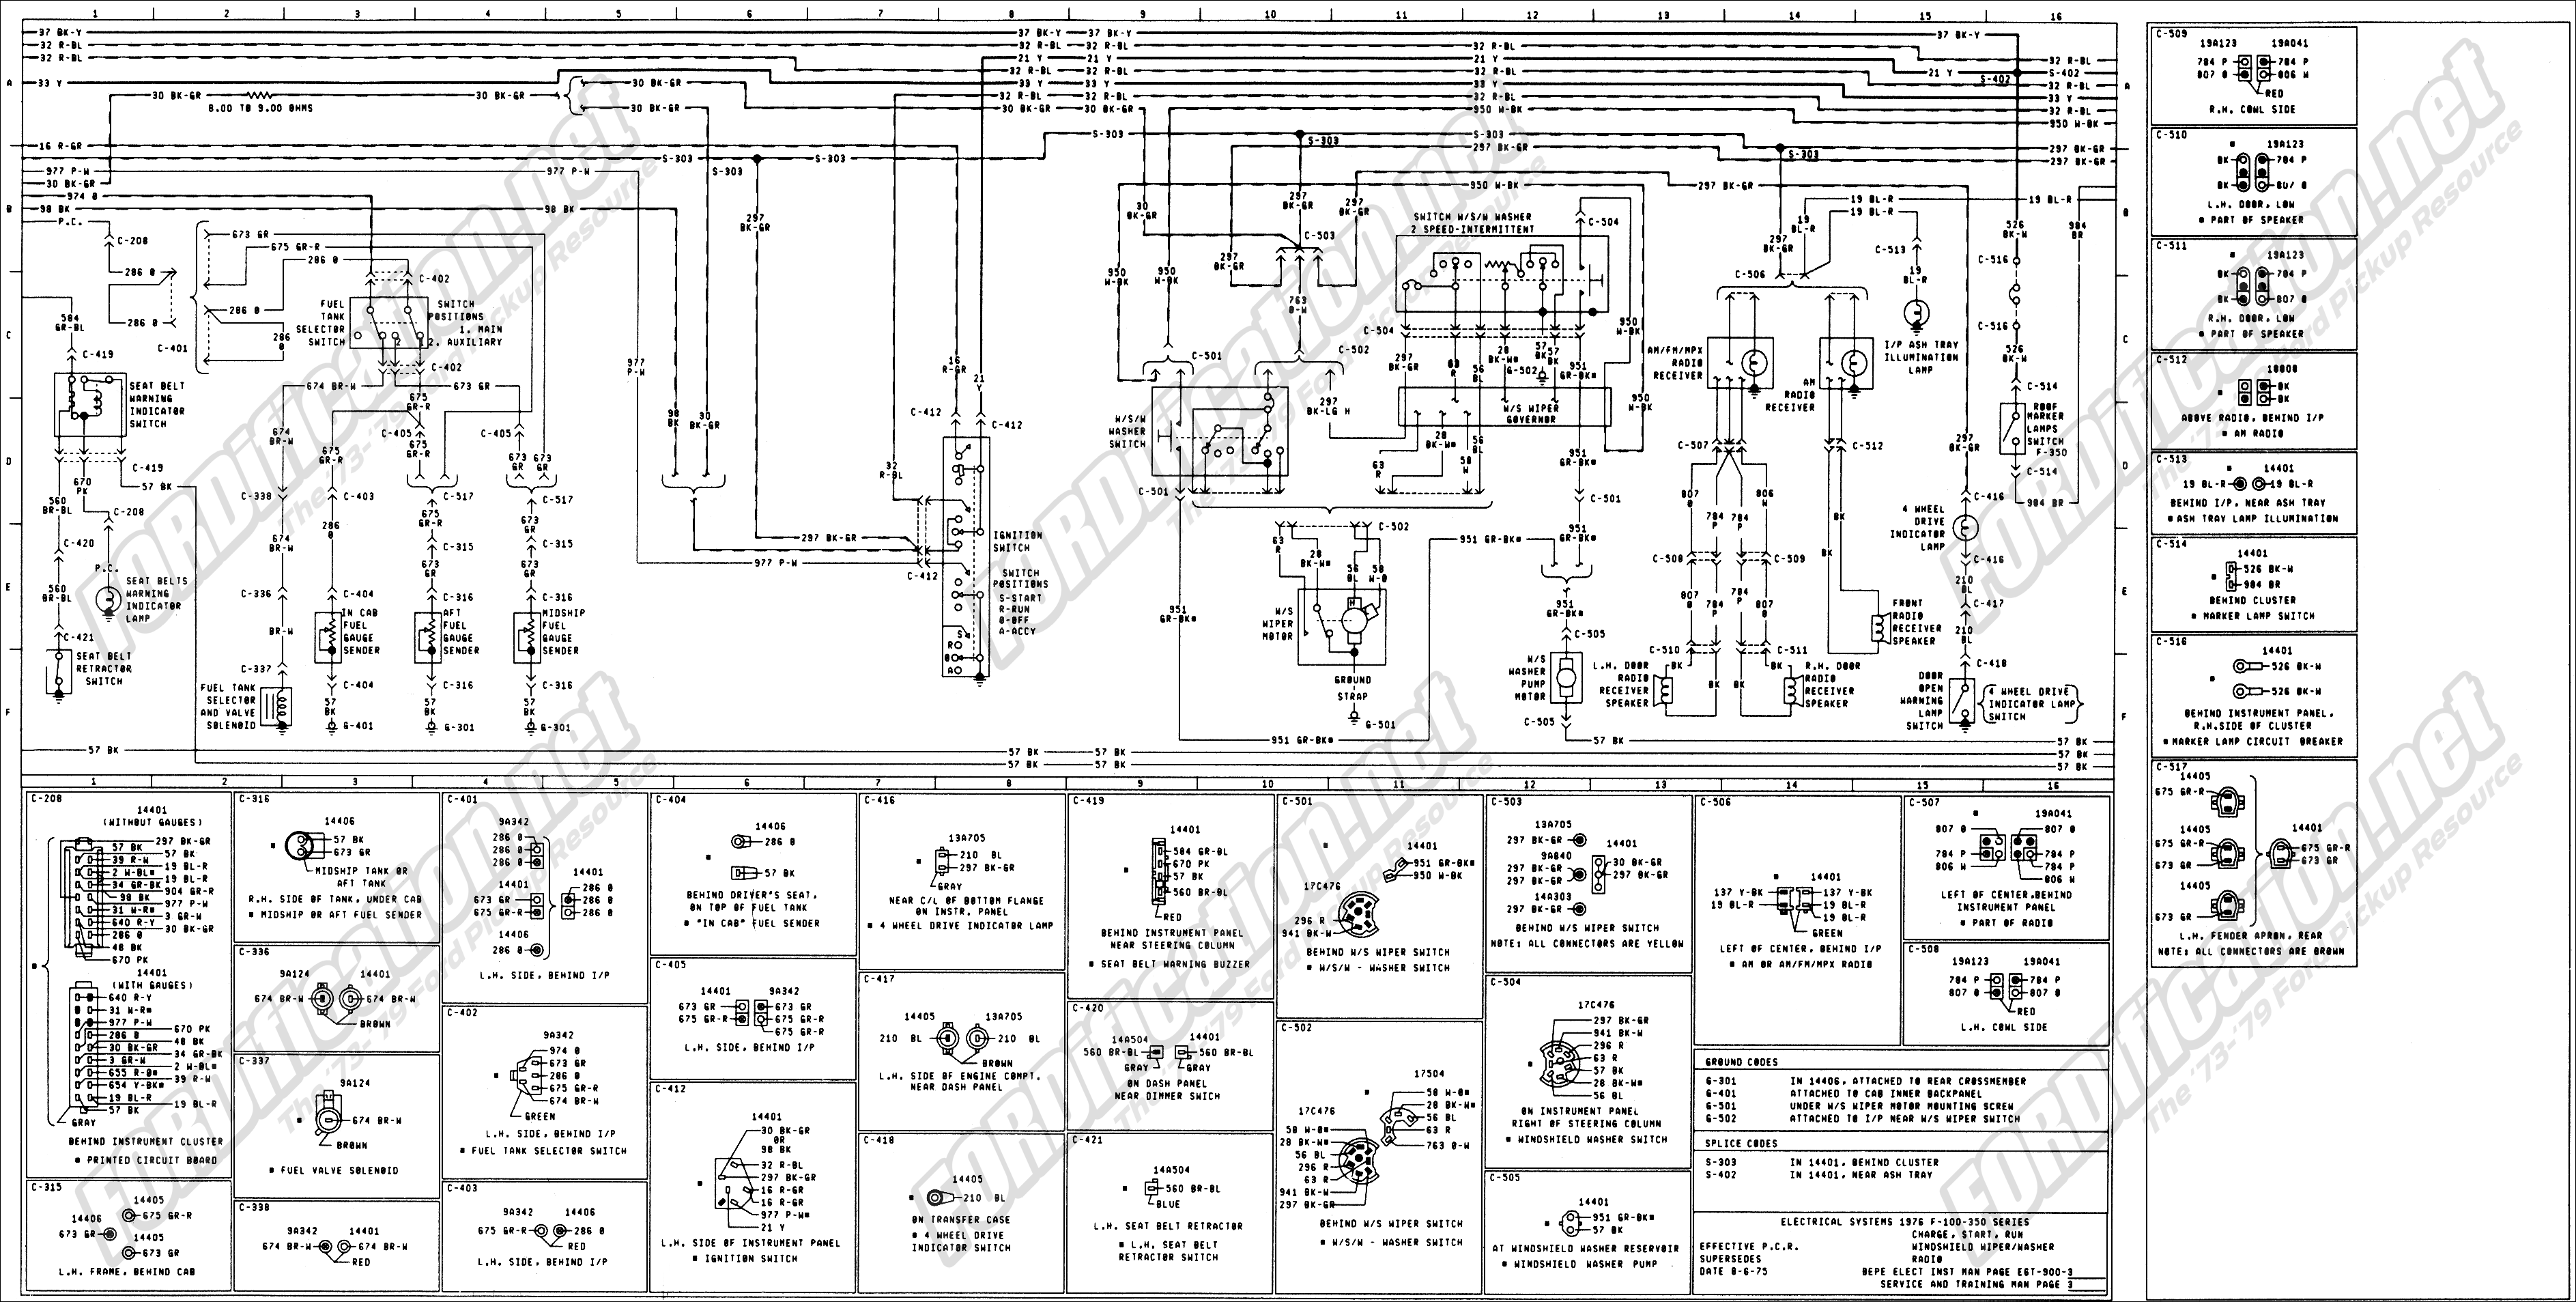 wiring_76master_3of9 1994 ford super duty wiring diagram wiring diagram simonand ford wiring diagrams at bayanpartner.co